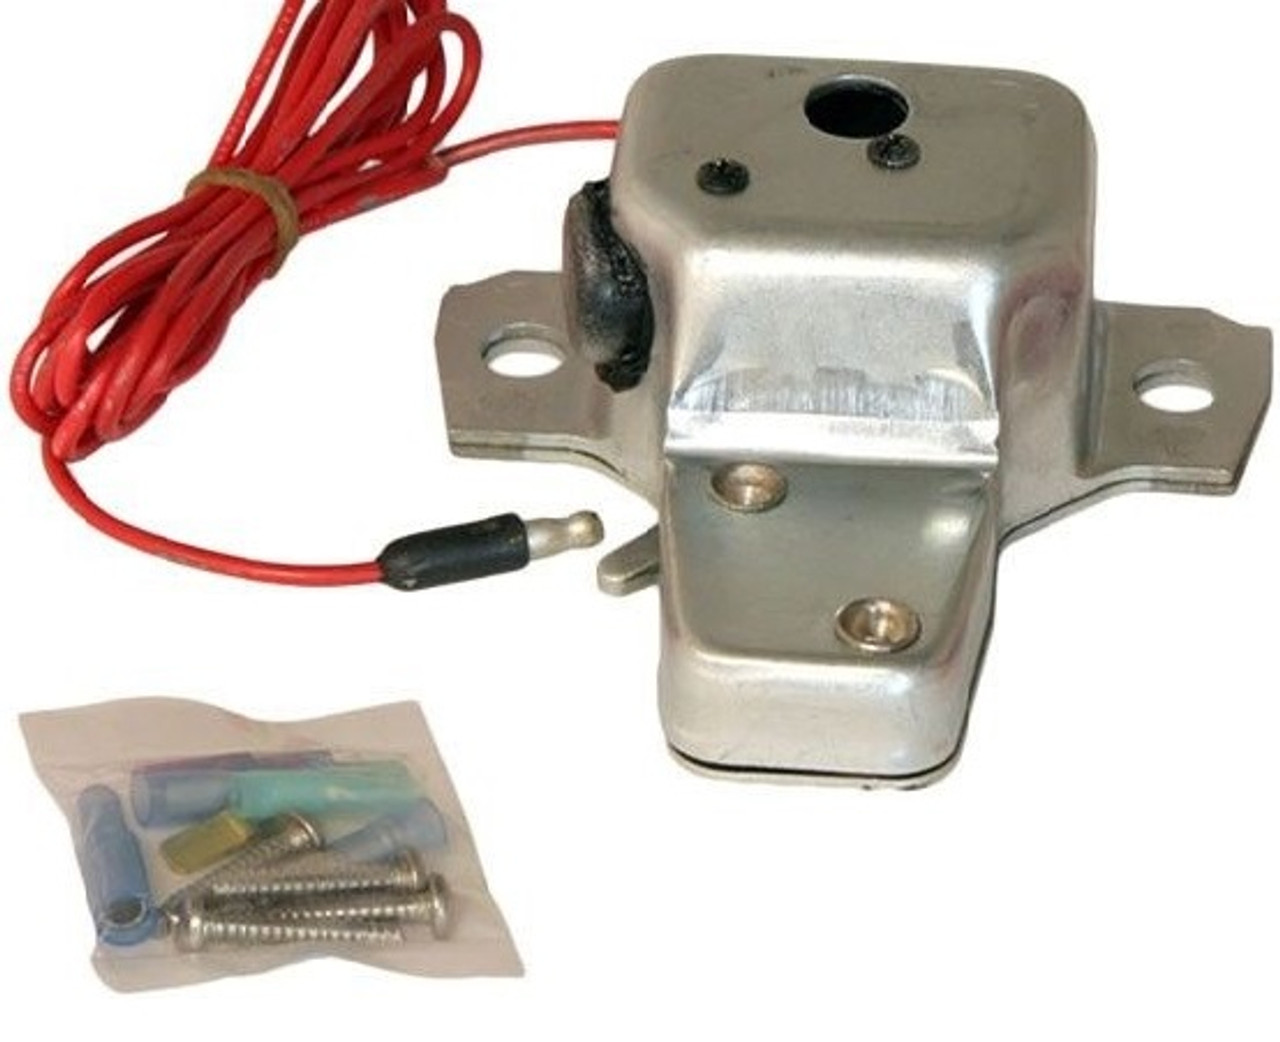 65 - 66 Mustang/ford  type  electric power lock